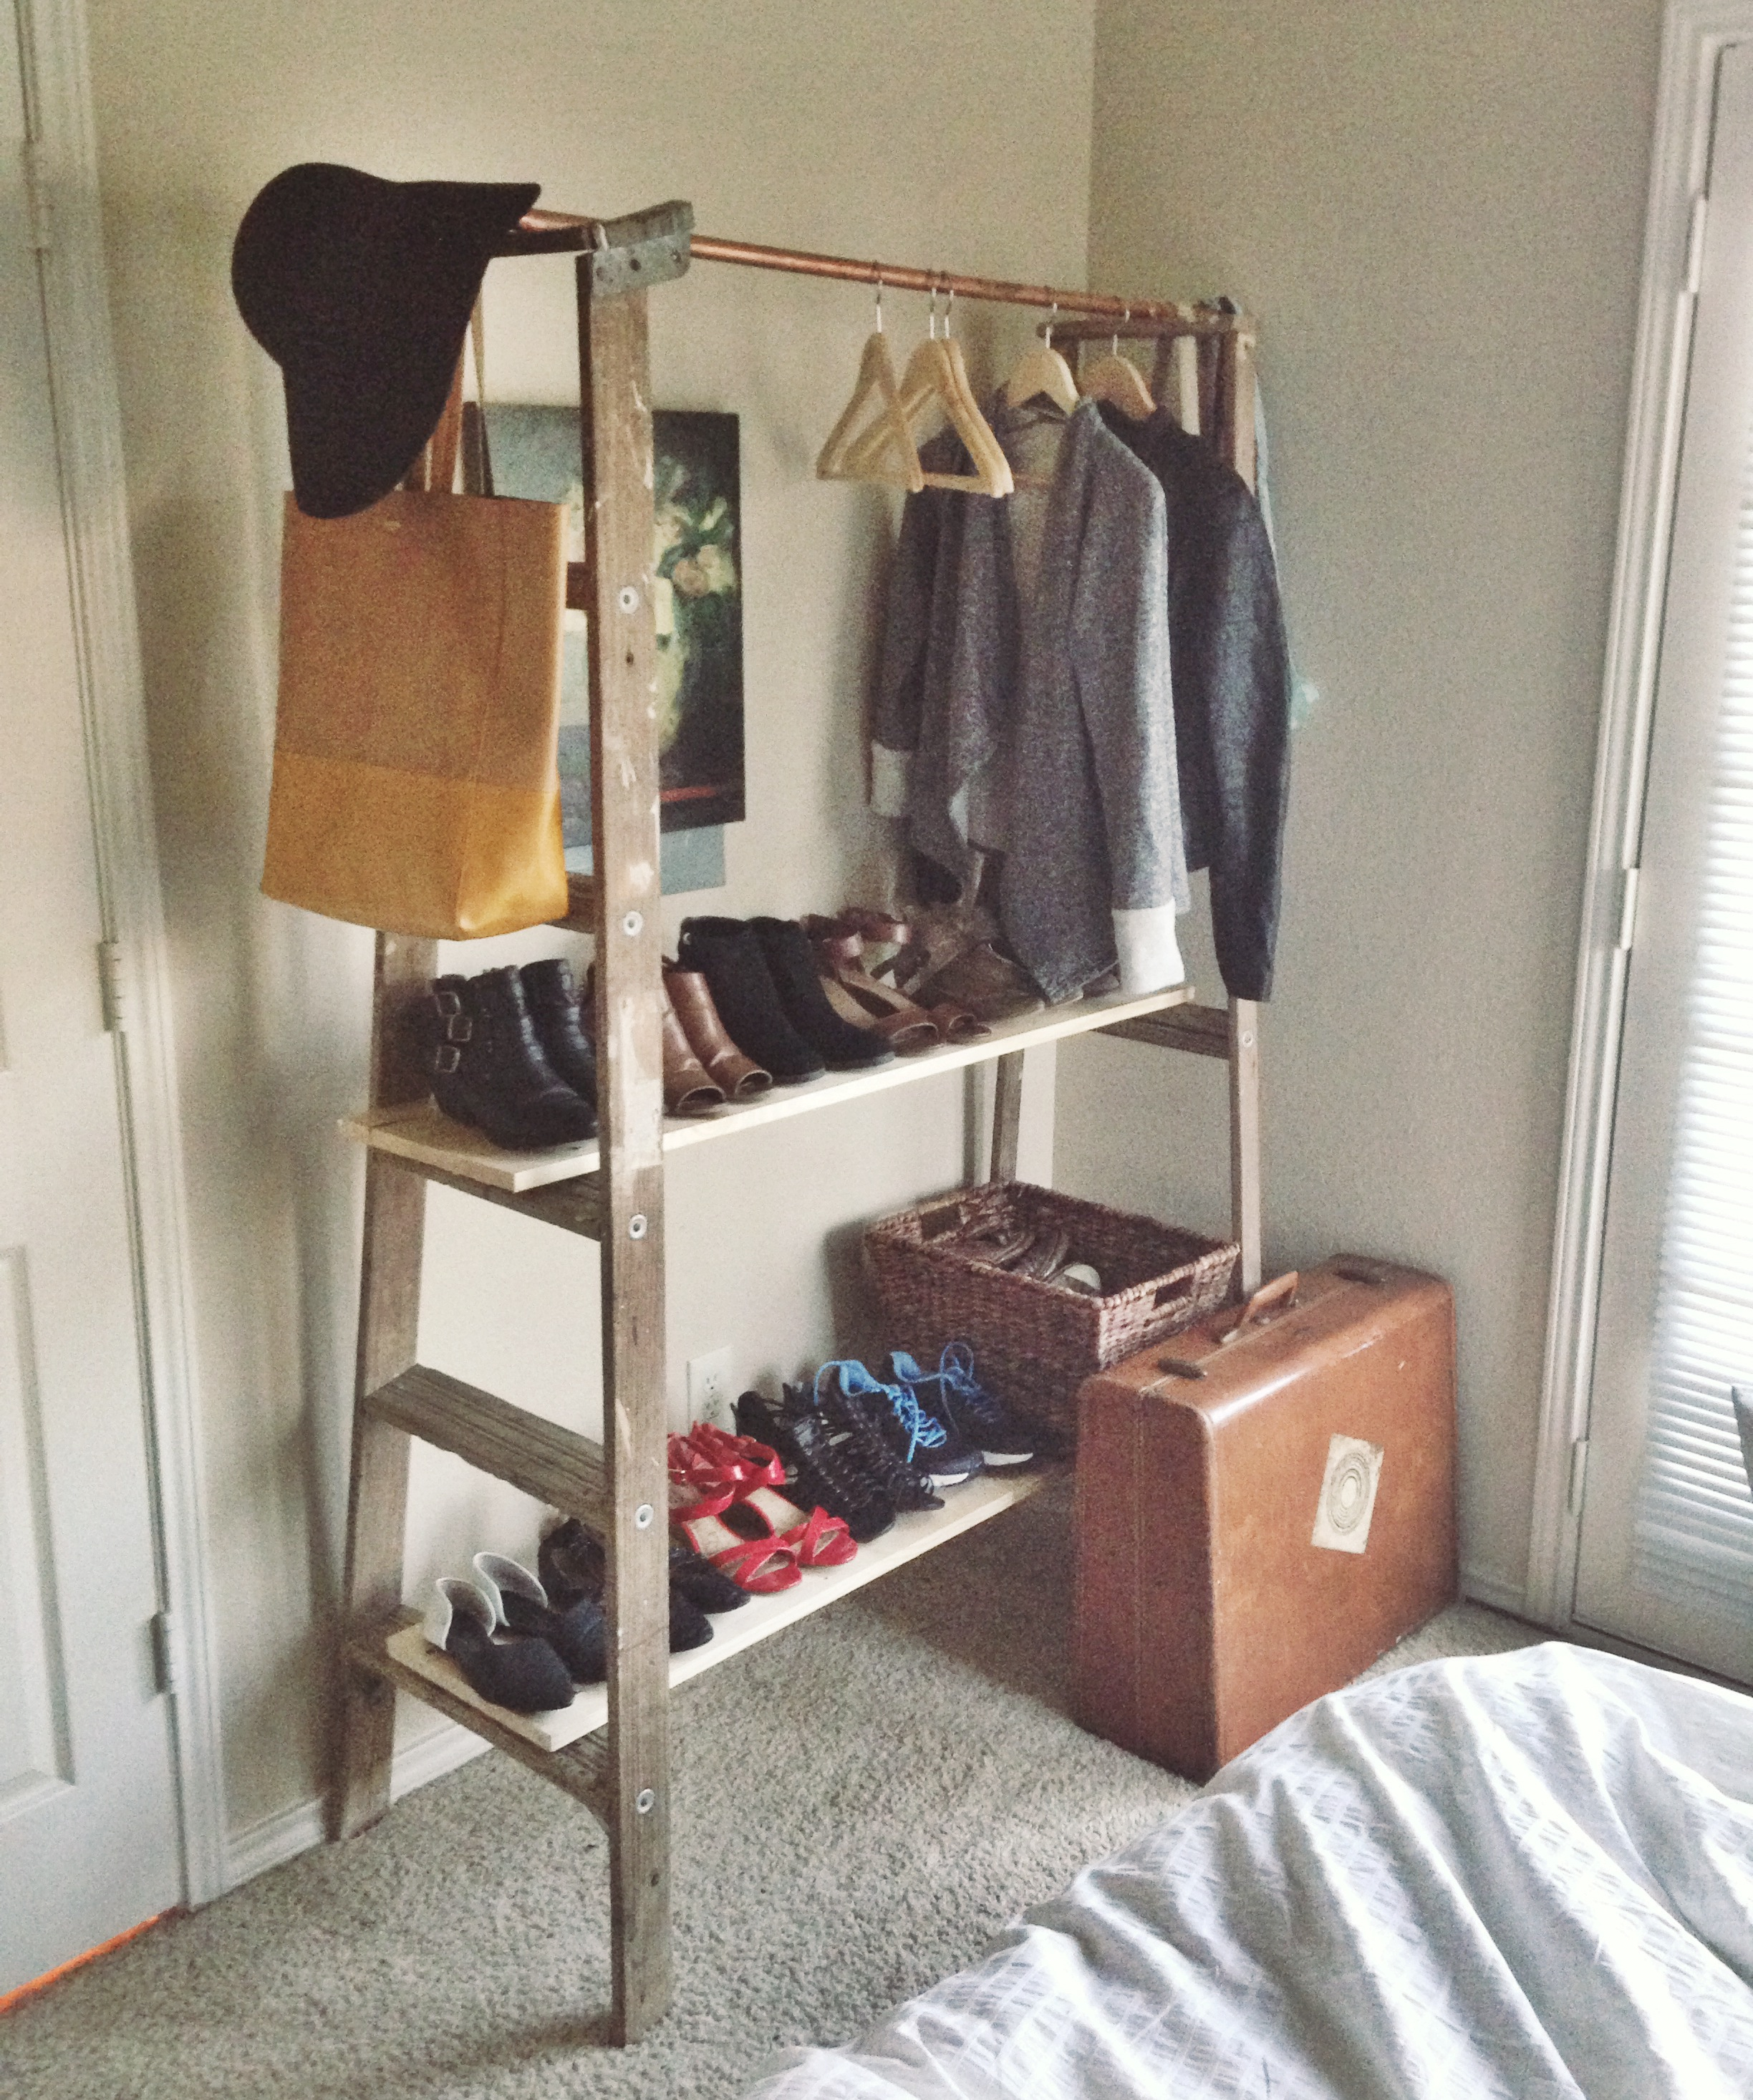 Clean Closet | A Brief History Of My Experience Building A Minimal Wardrobe:  Part 2